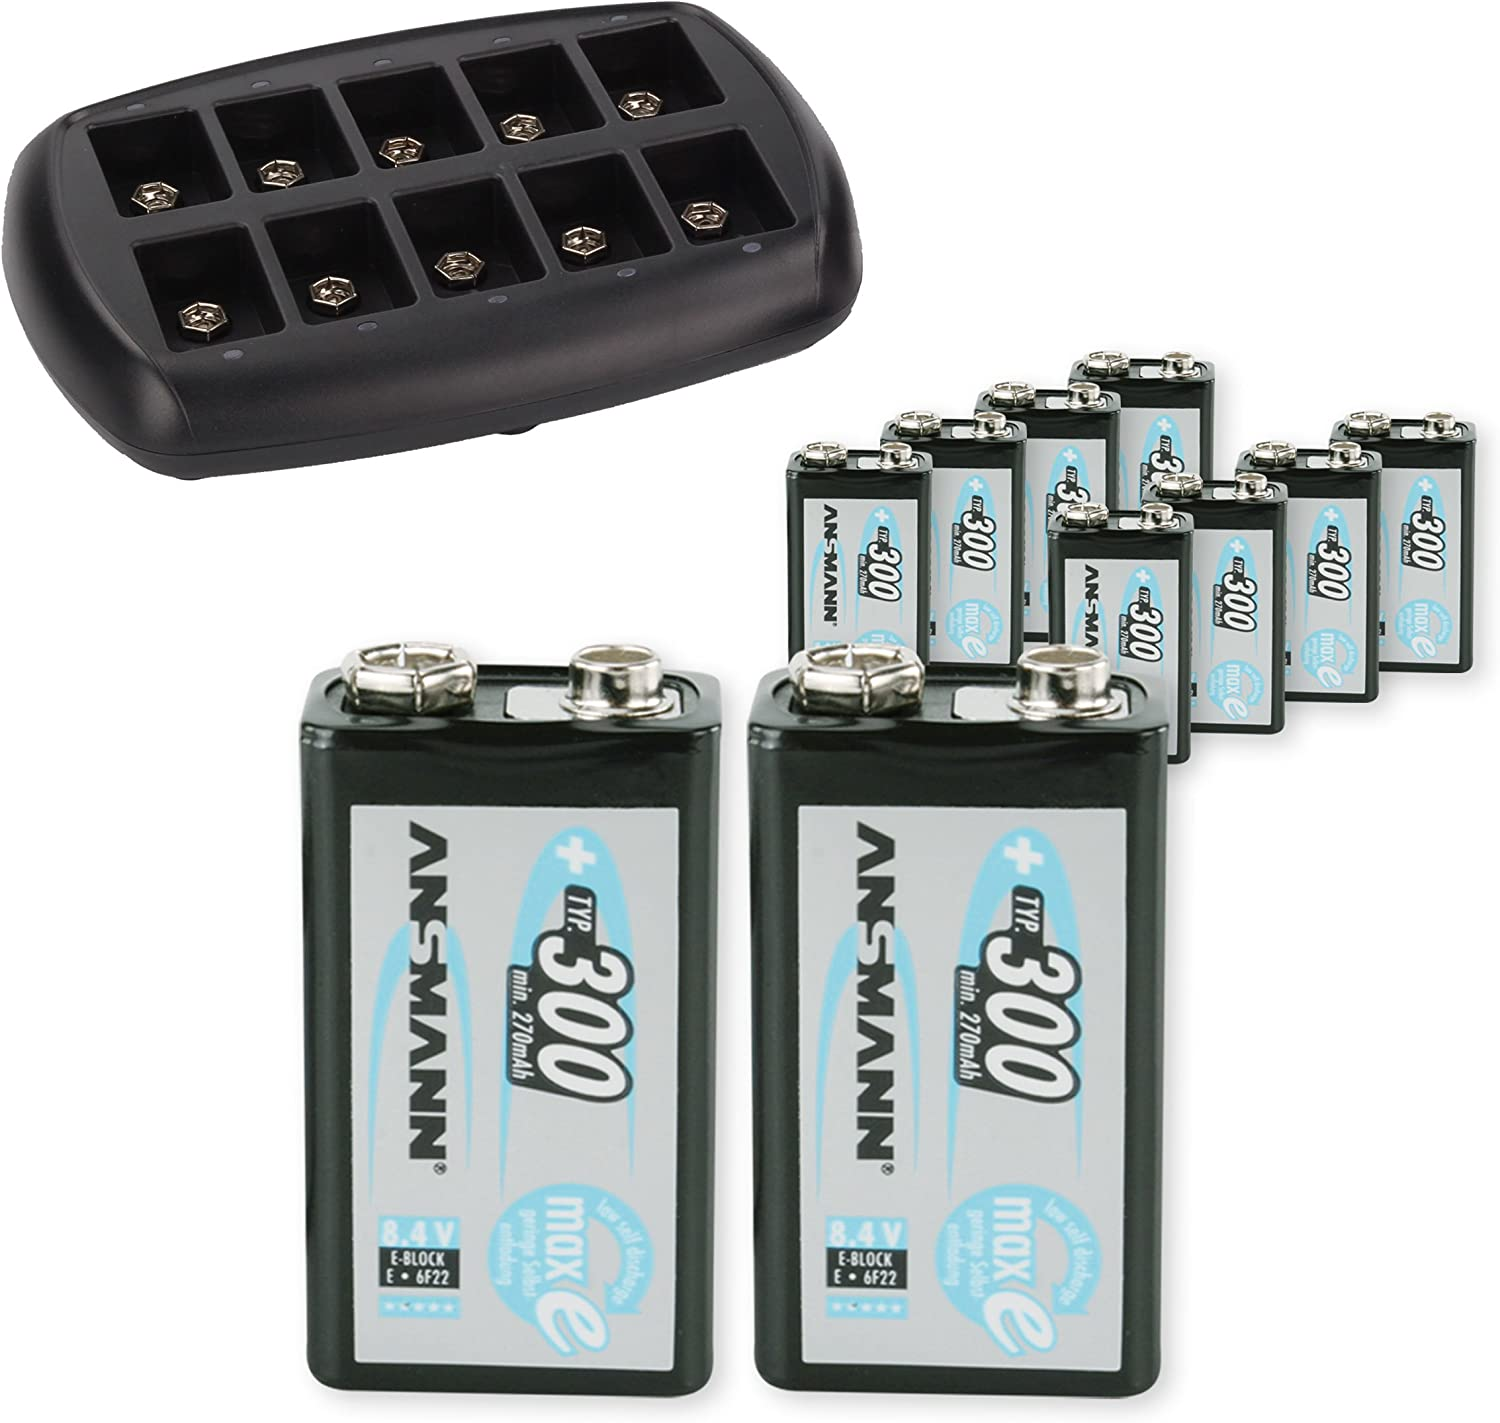 NiMH//NiCd 9 Volt Rechargeable Batteries ANSMANN 10-Bay 9V Smart Battery Charger Universal Maintenance Station for 10pcs Overcharge Protection, Trickle Charge When Full